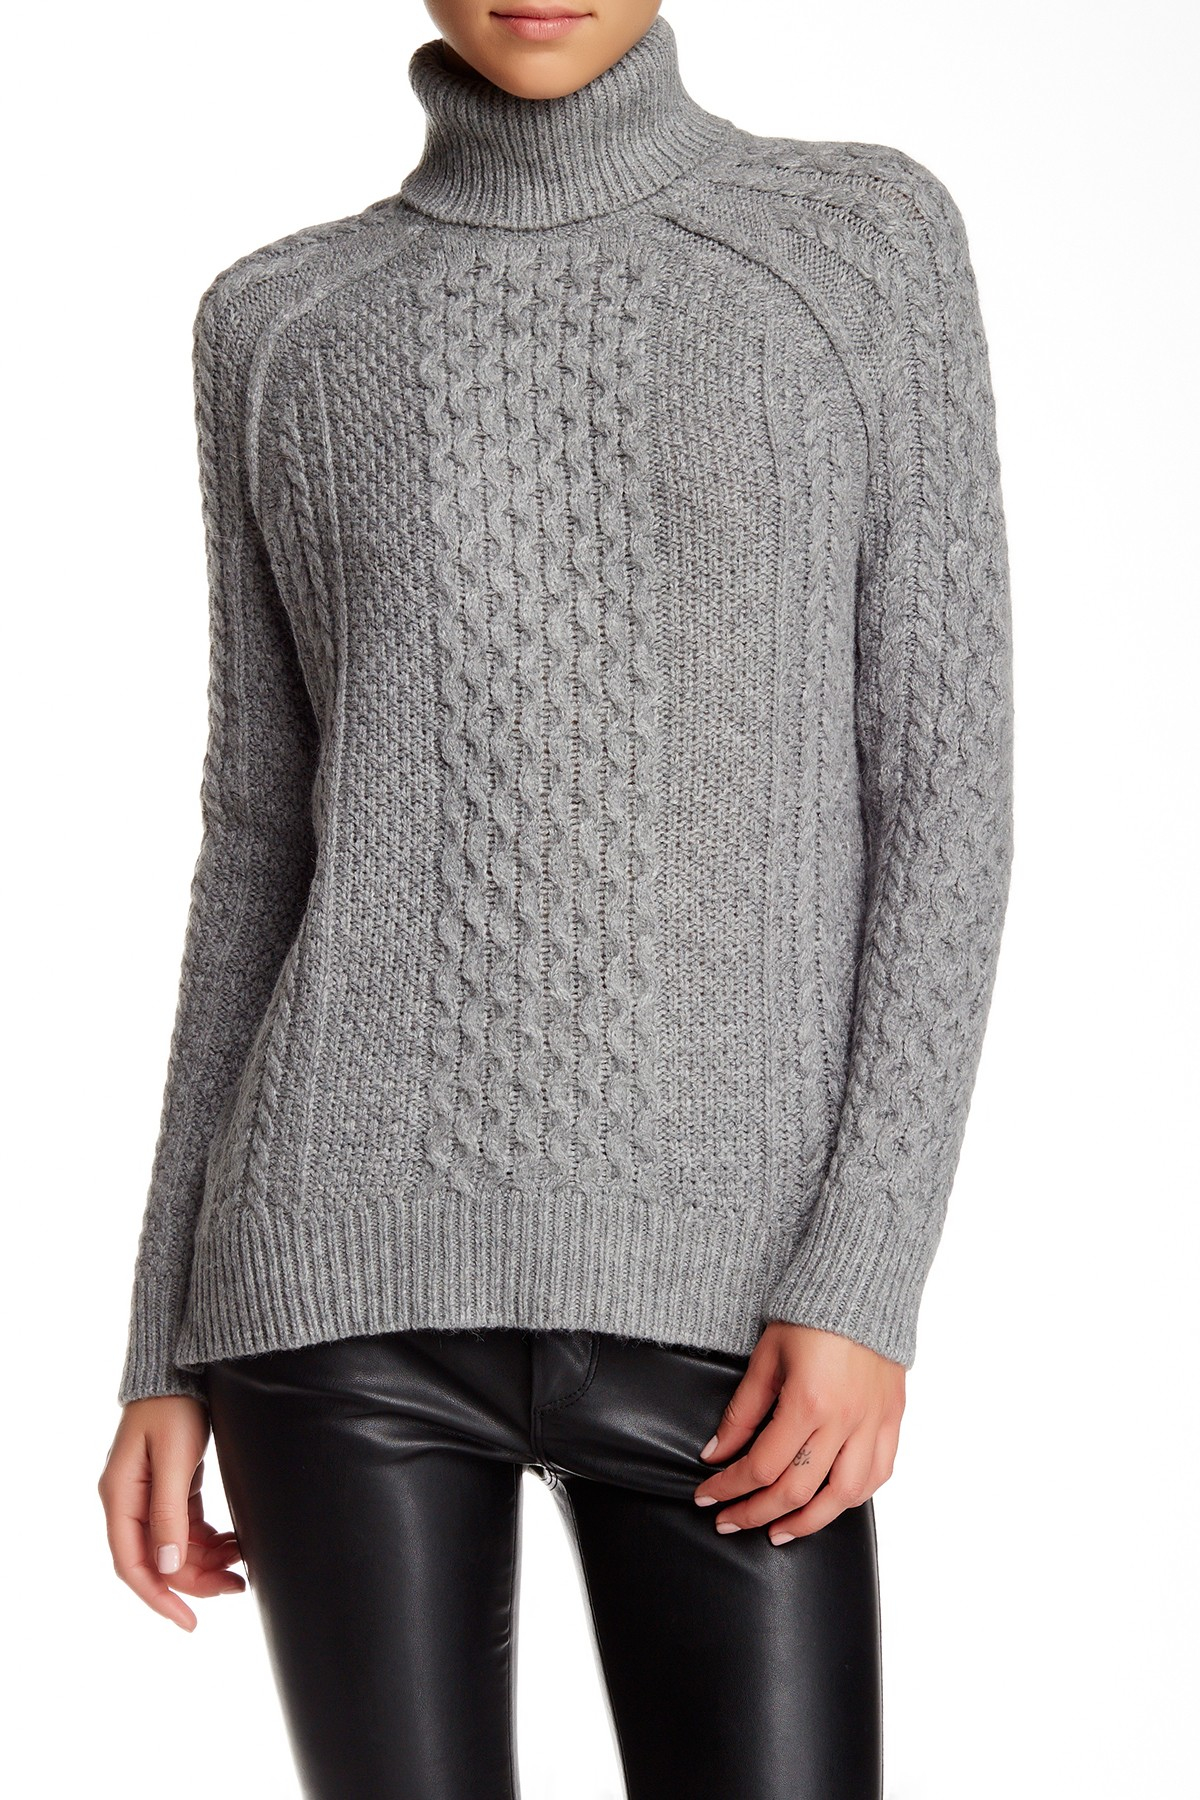 Mens Black Cable Knit Turtleneck Sweater Sweater Grey